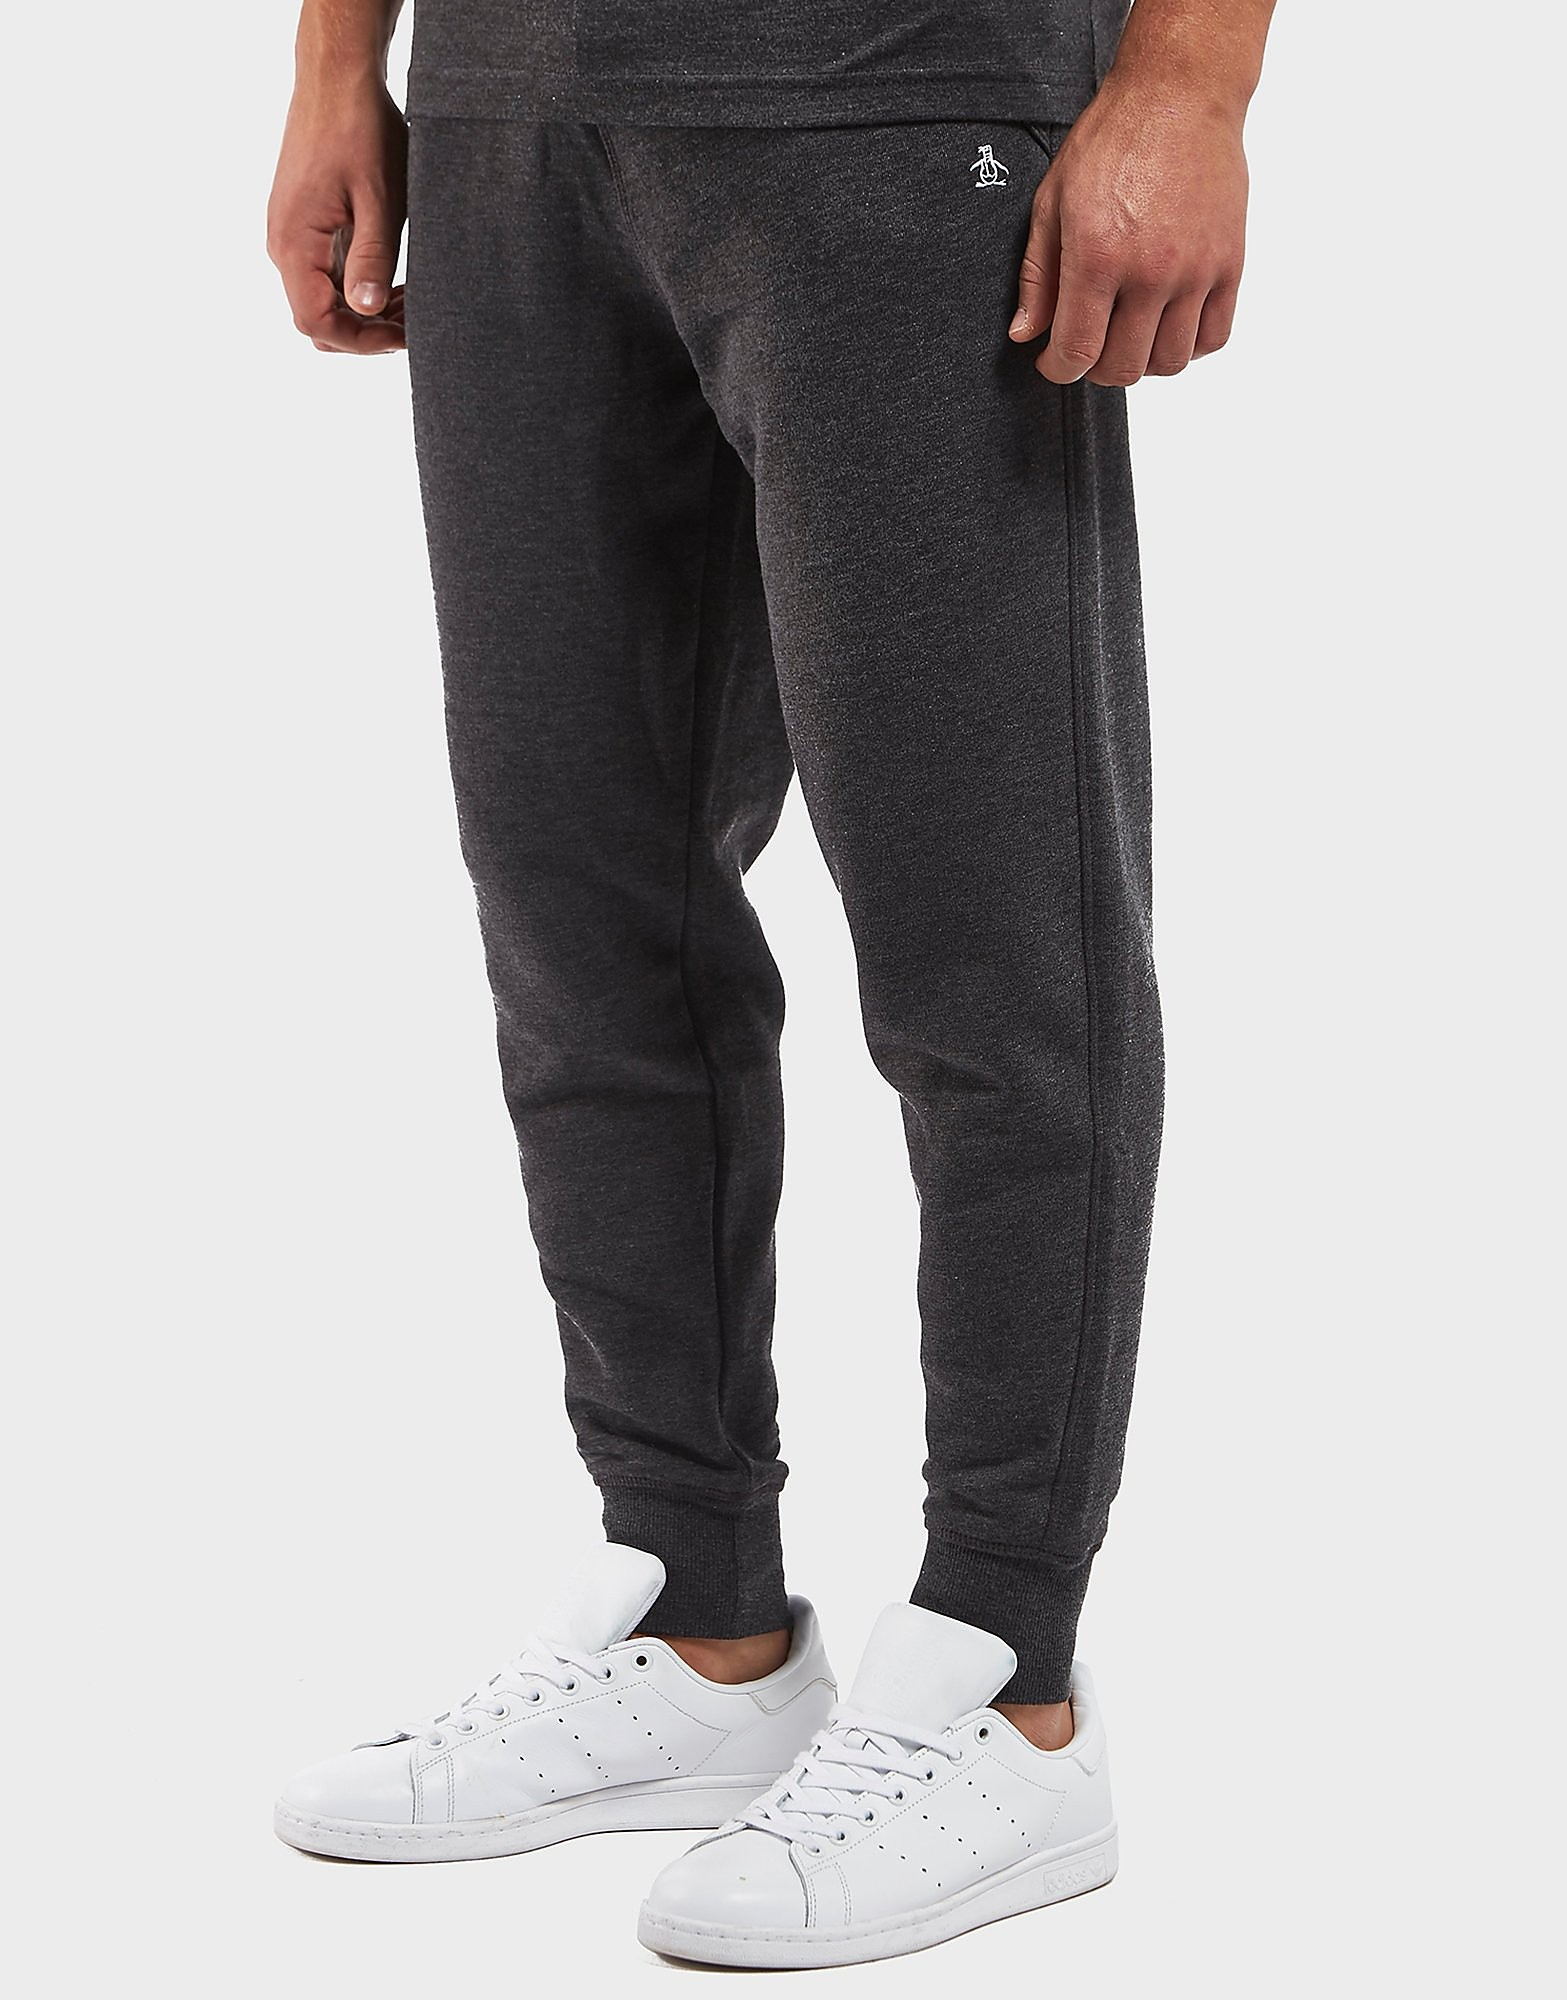 Original Penguin Slim Fleece Track Pants - Exclusive